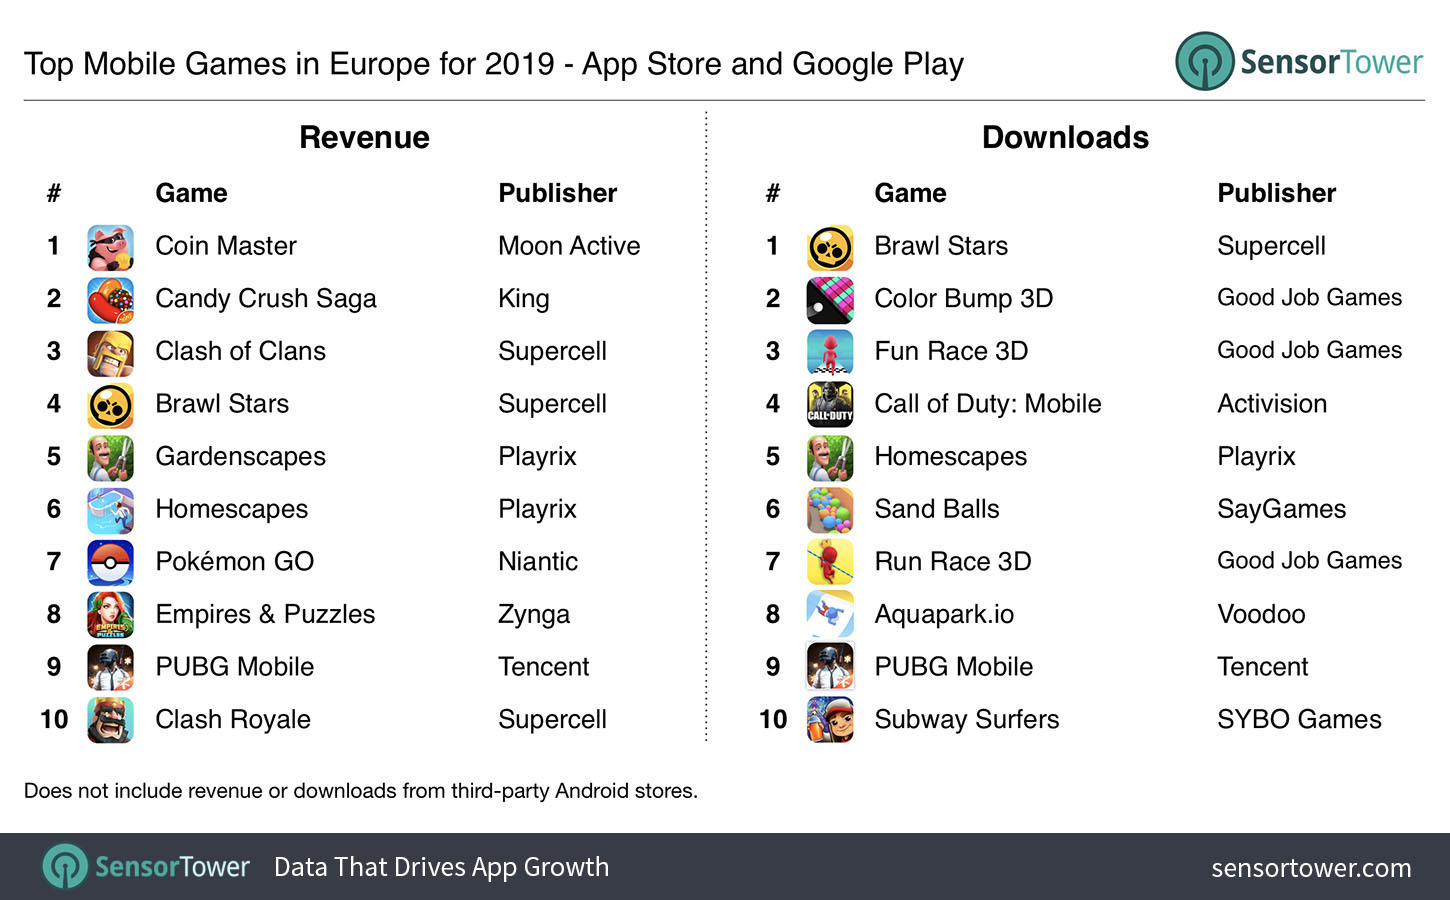 Table showing the highest grossing mobile games in Europe in 2019